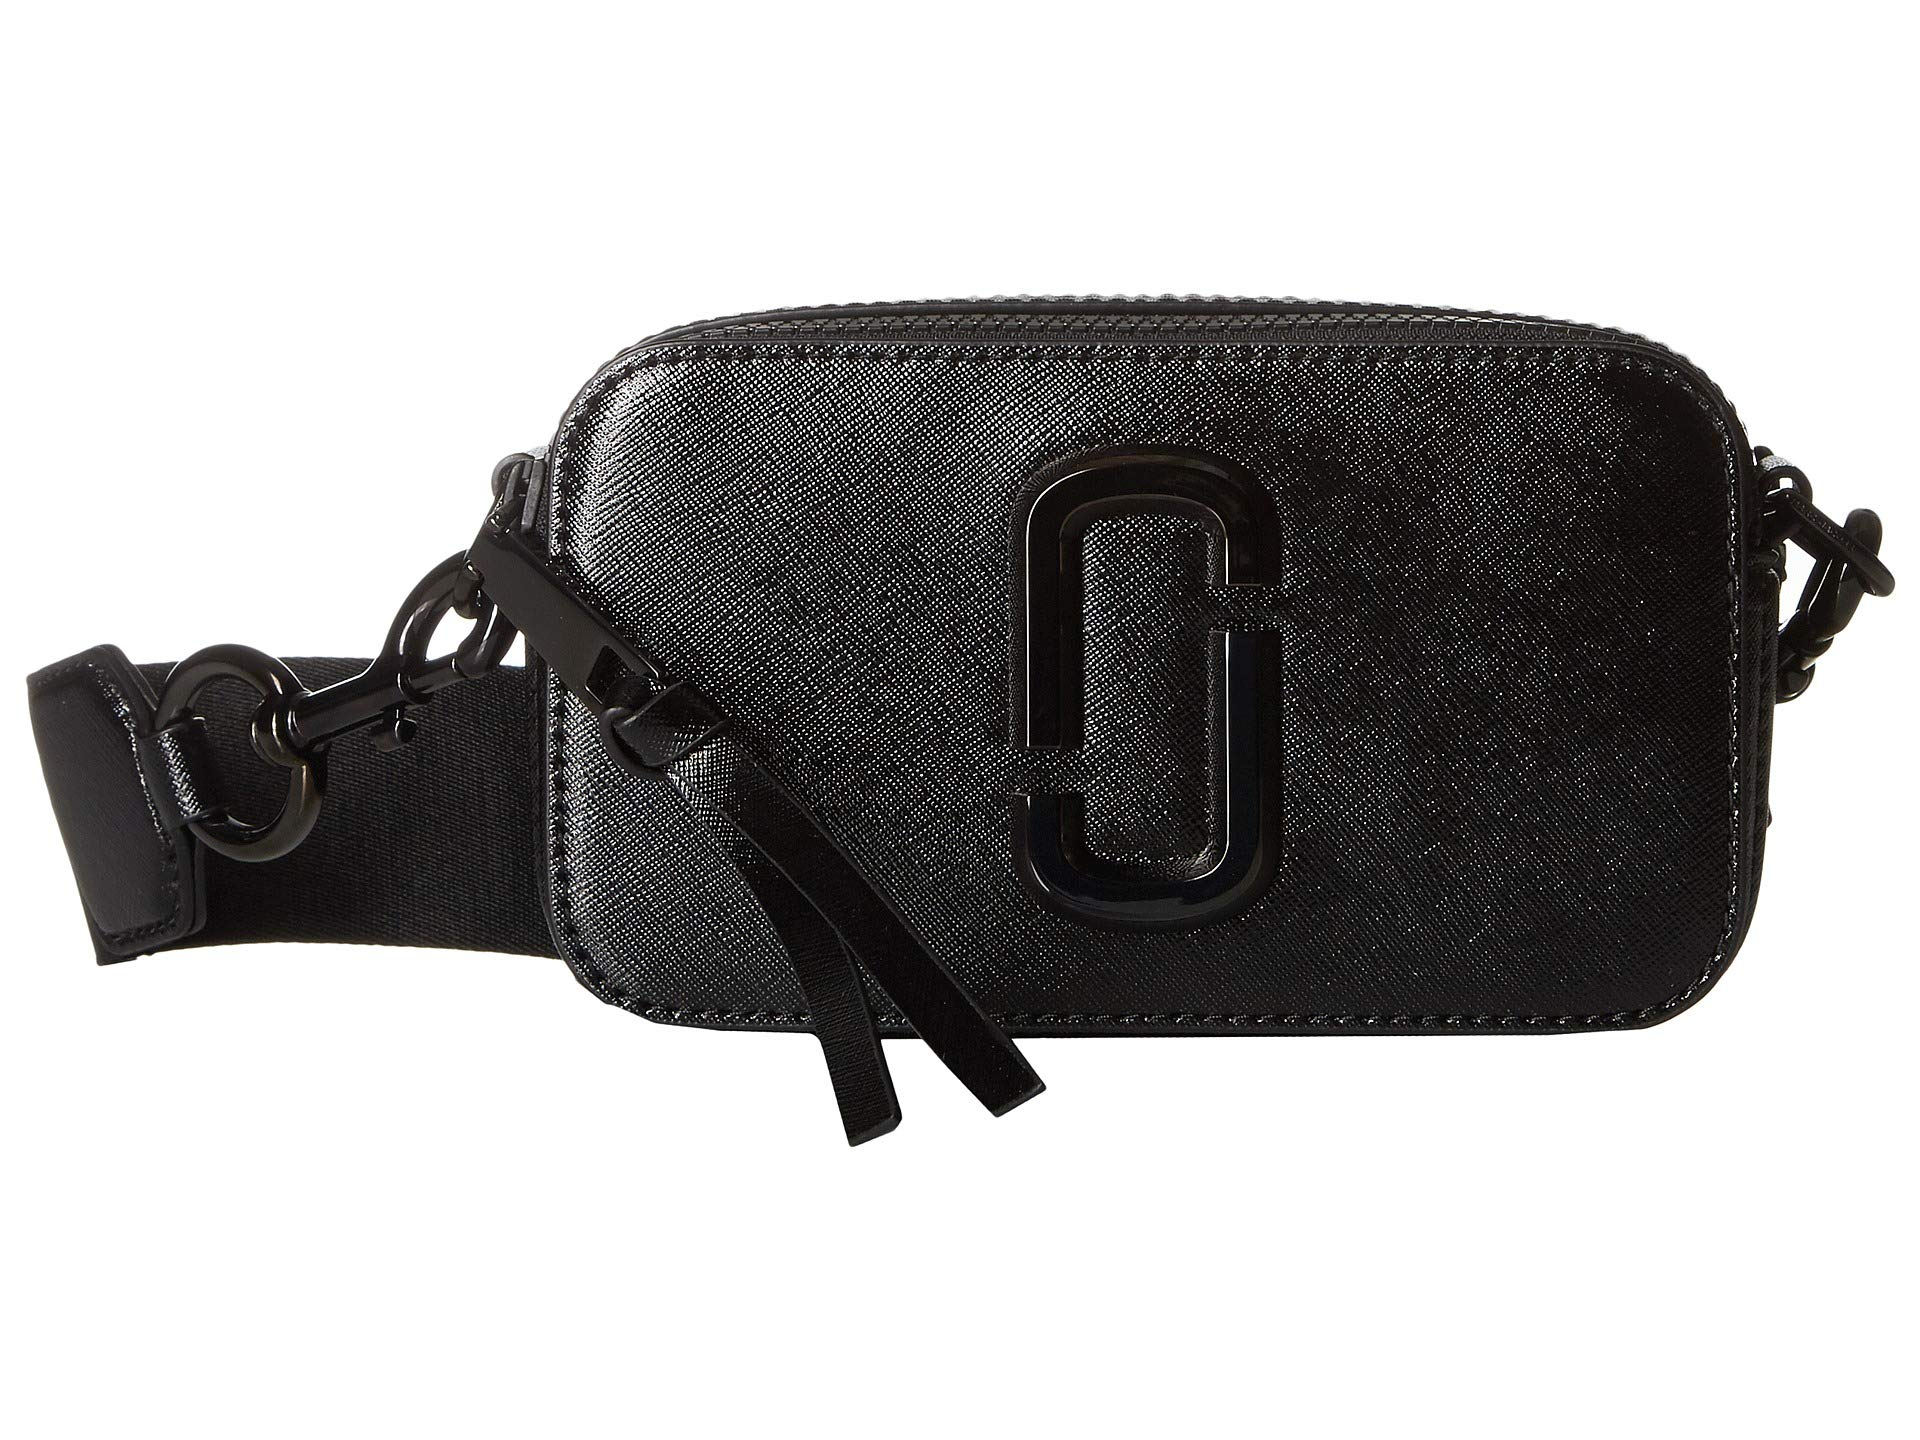 Marc Jacobs Snapshot DTM at Luxury.Zappos.com 8cdf0fe9971ab